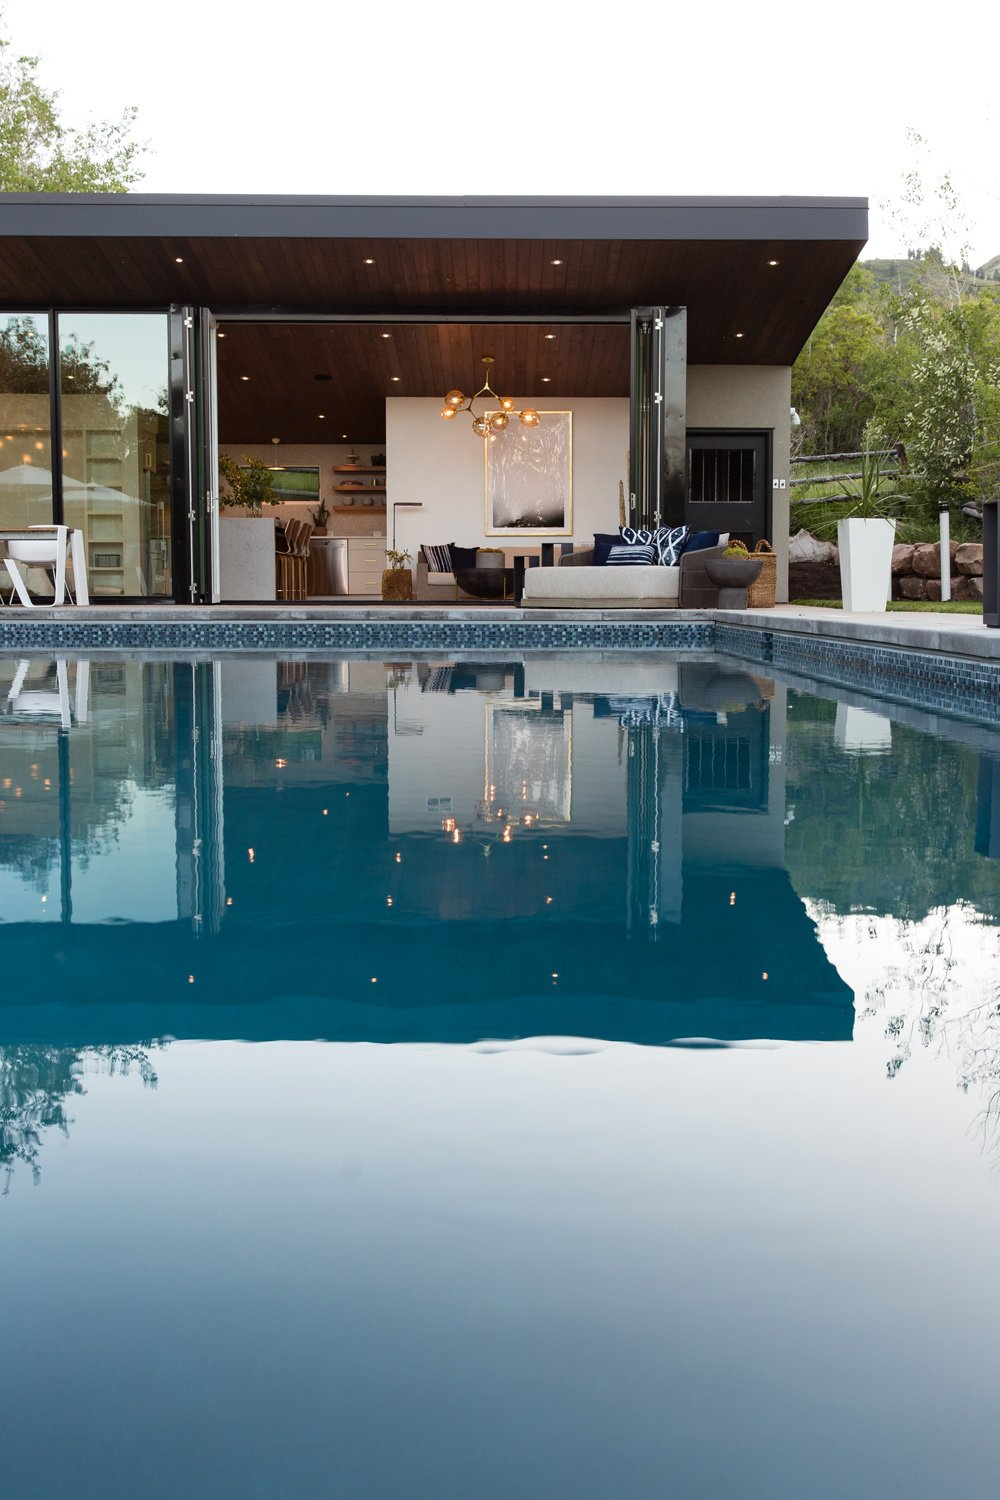 Outdoor, Back Yard, Concrete Patio, Porch, Deck, Shower Pools, Tubs, Shower, Swimming Pools, Tubs, Shower, and Concrete Pools, Tubs, Shower  Photo 7 of 16 in This Can-Do Pool House Cleverly Goes From Private to Party Mode from Modern Mountain Pool House